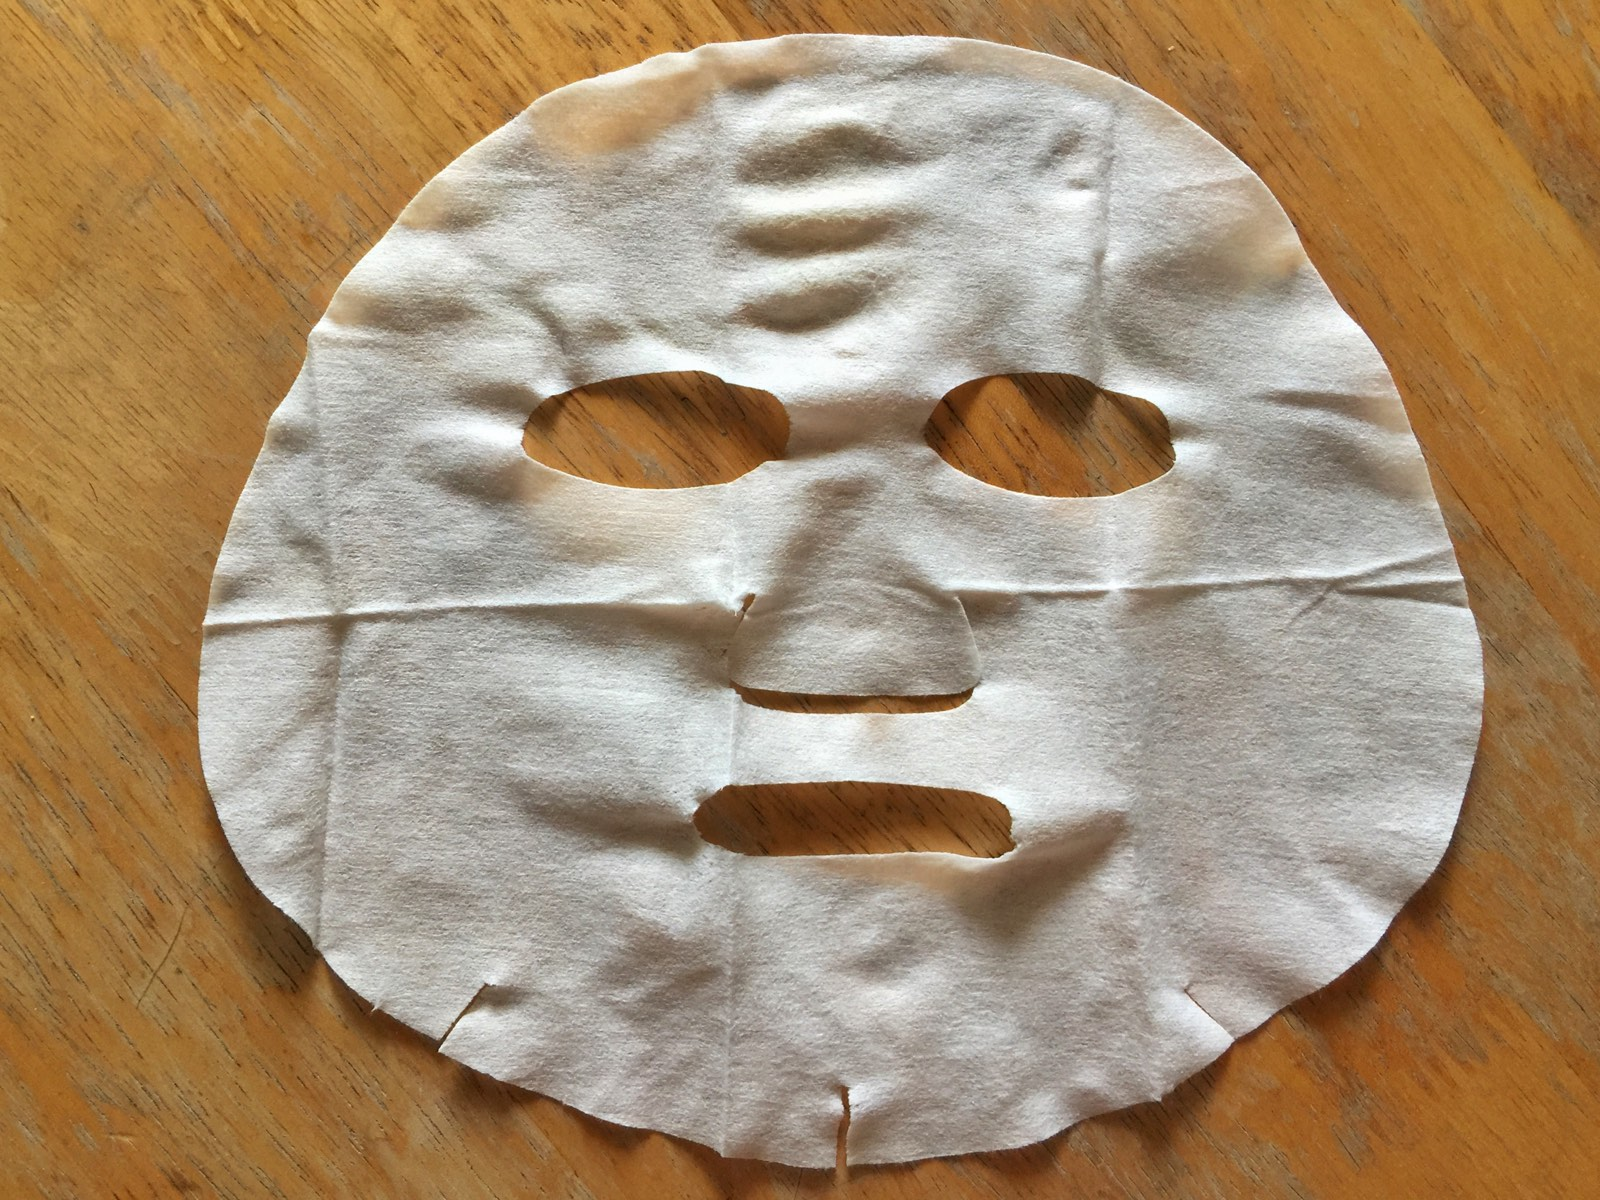 sheet-mask-on-table